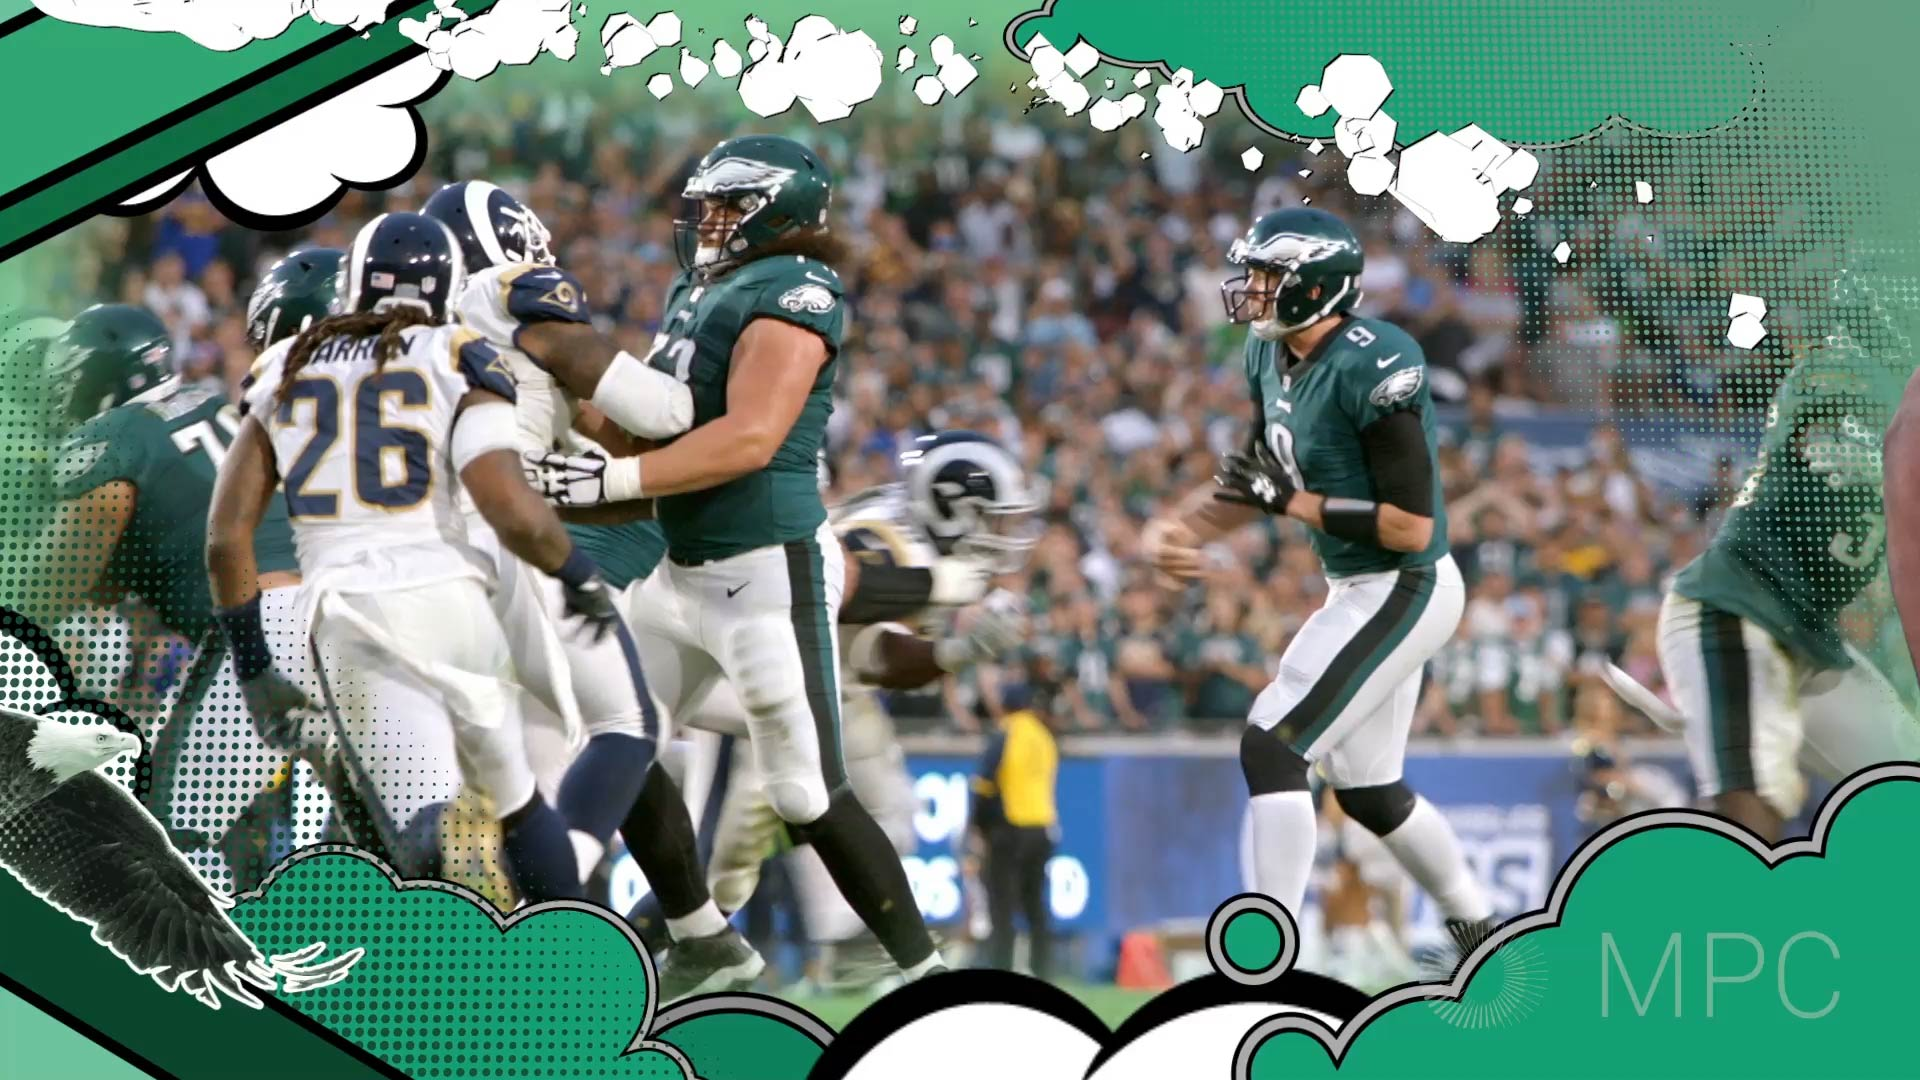 NFL PLAYOFF PICTURE_06.jpg